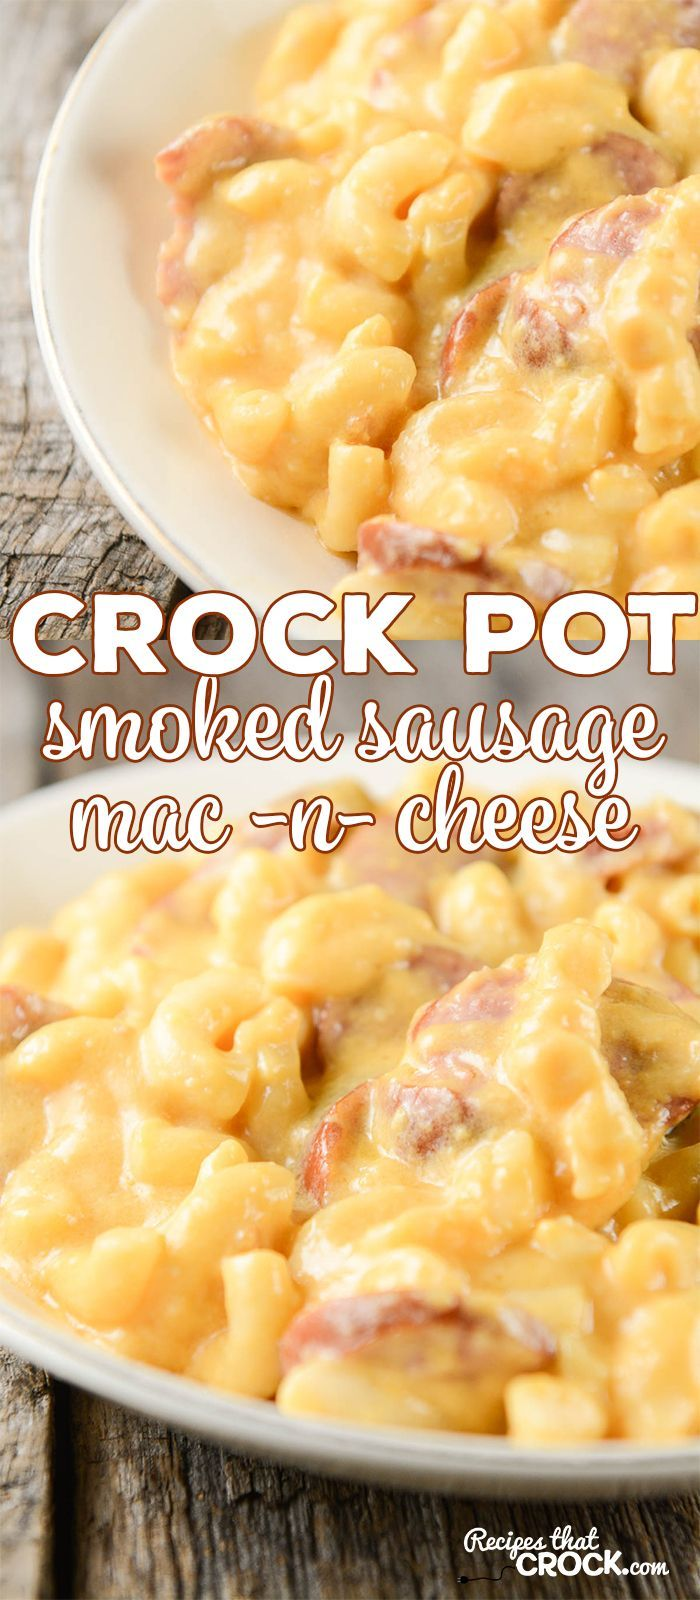 This Crock Pot Smoked Sausage Mac 'n Cheese is not only creamy, but has an amazing smoky flavor!